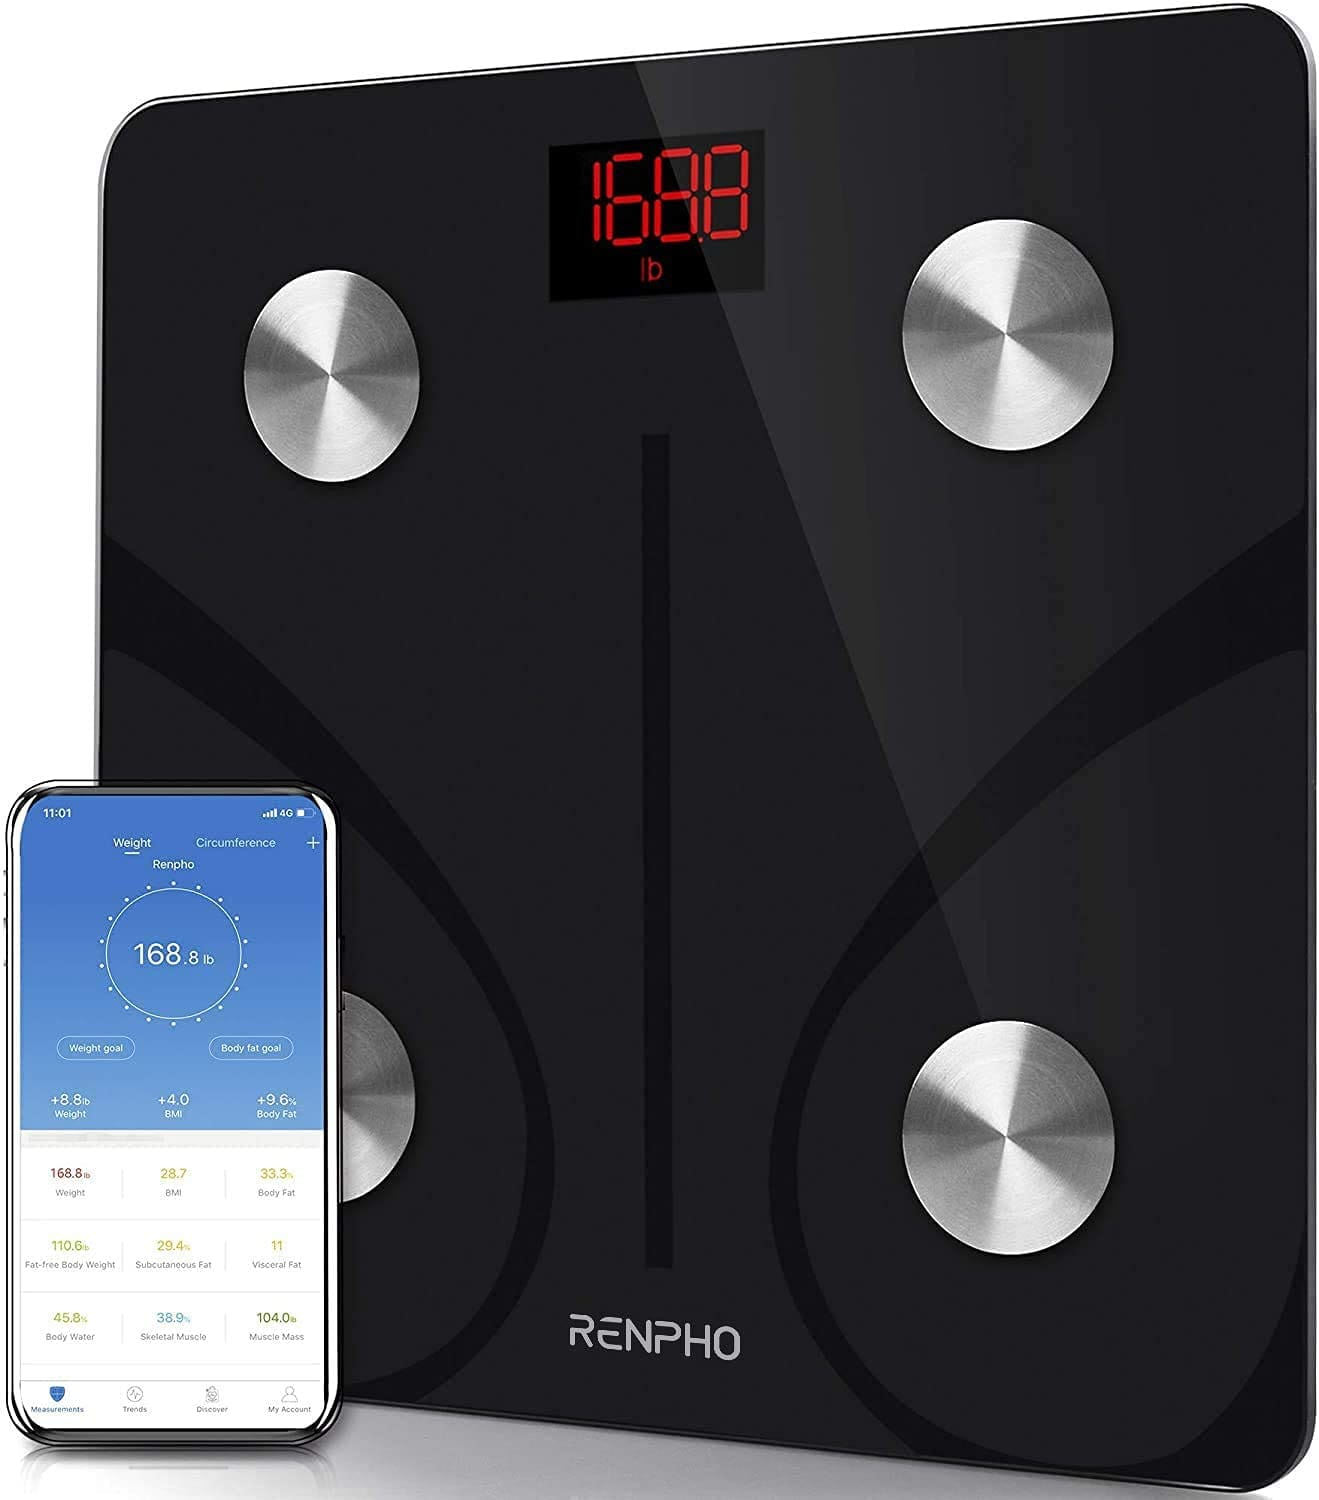 Renpho BMI Smart Digital Weight Scale w/ Smartphone App Sync App $16.99 + Free Shipping w/ Prime or on $25+